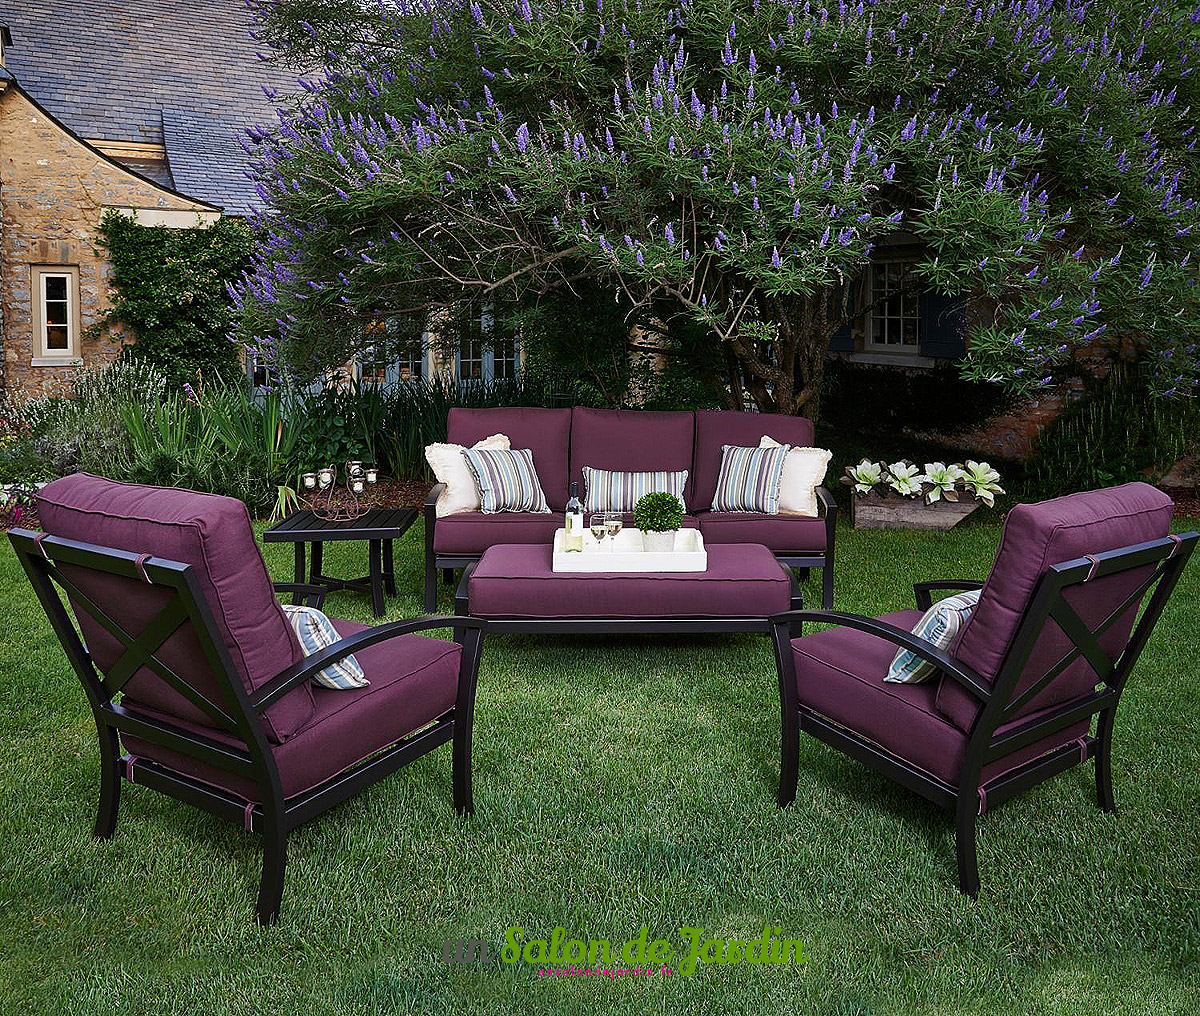 salon de jardin en fer forg id es de d coration. Black Bedroom Furniture Sets. Home Design Ideas